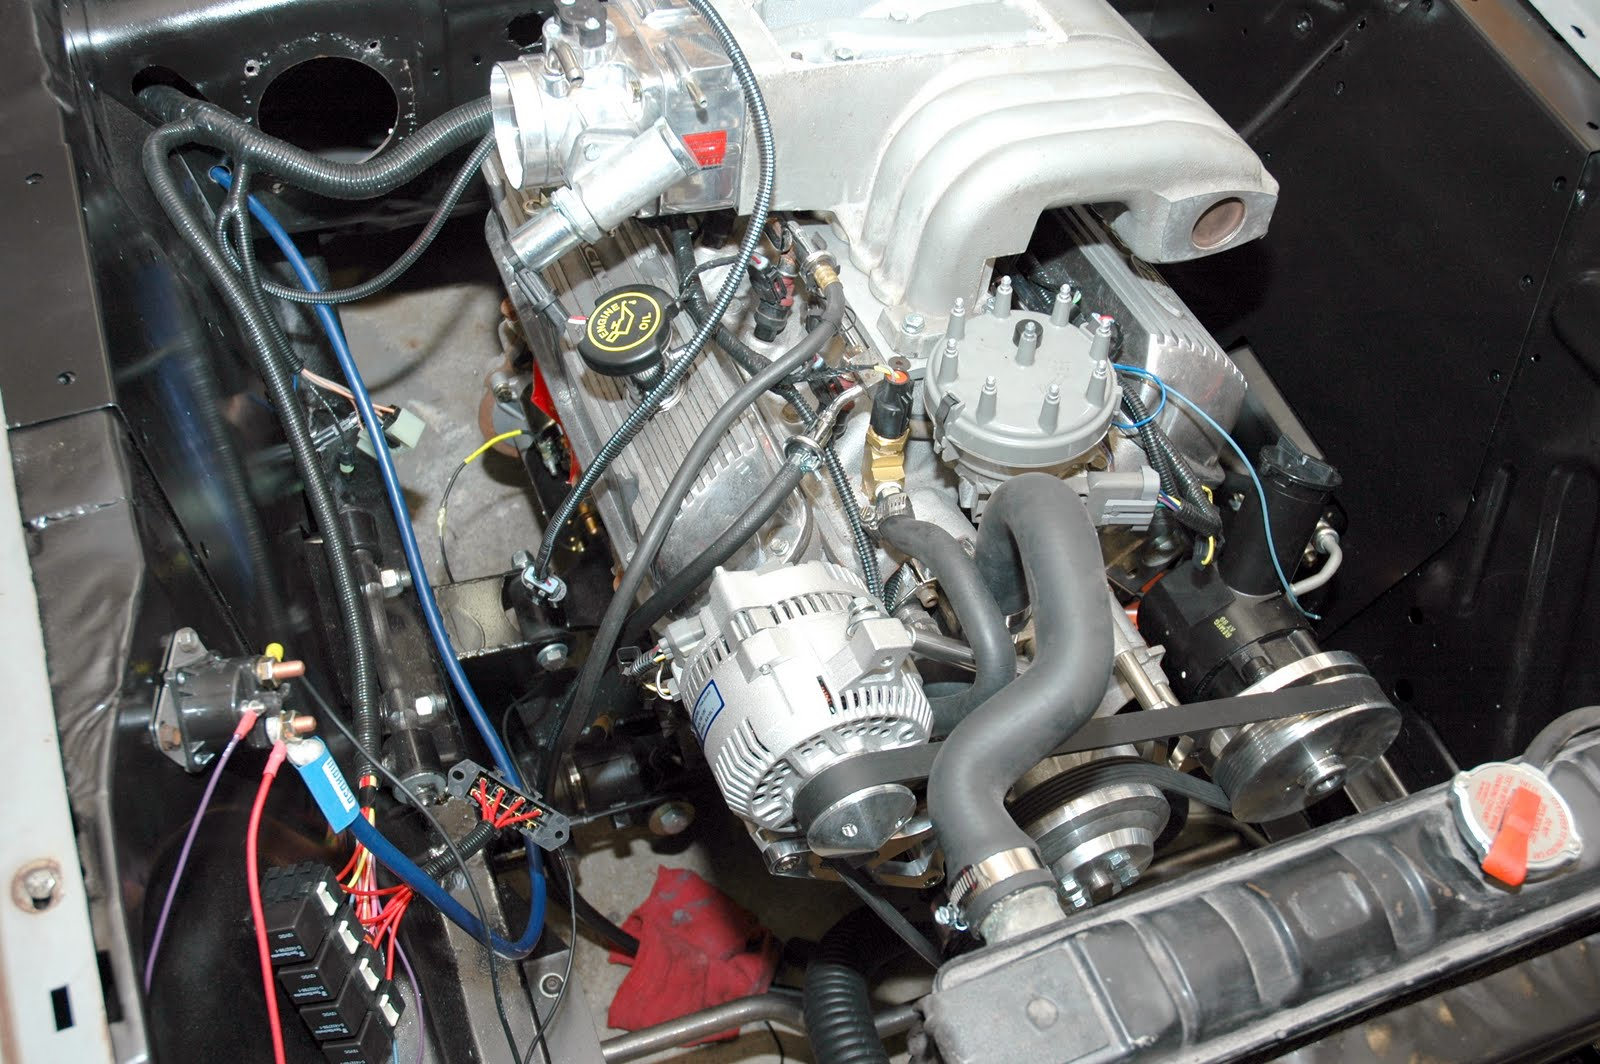 65 mustang fuel filter location wiring library65 mustang fuel filter location [ 1600 x 1064 Pixel ]